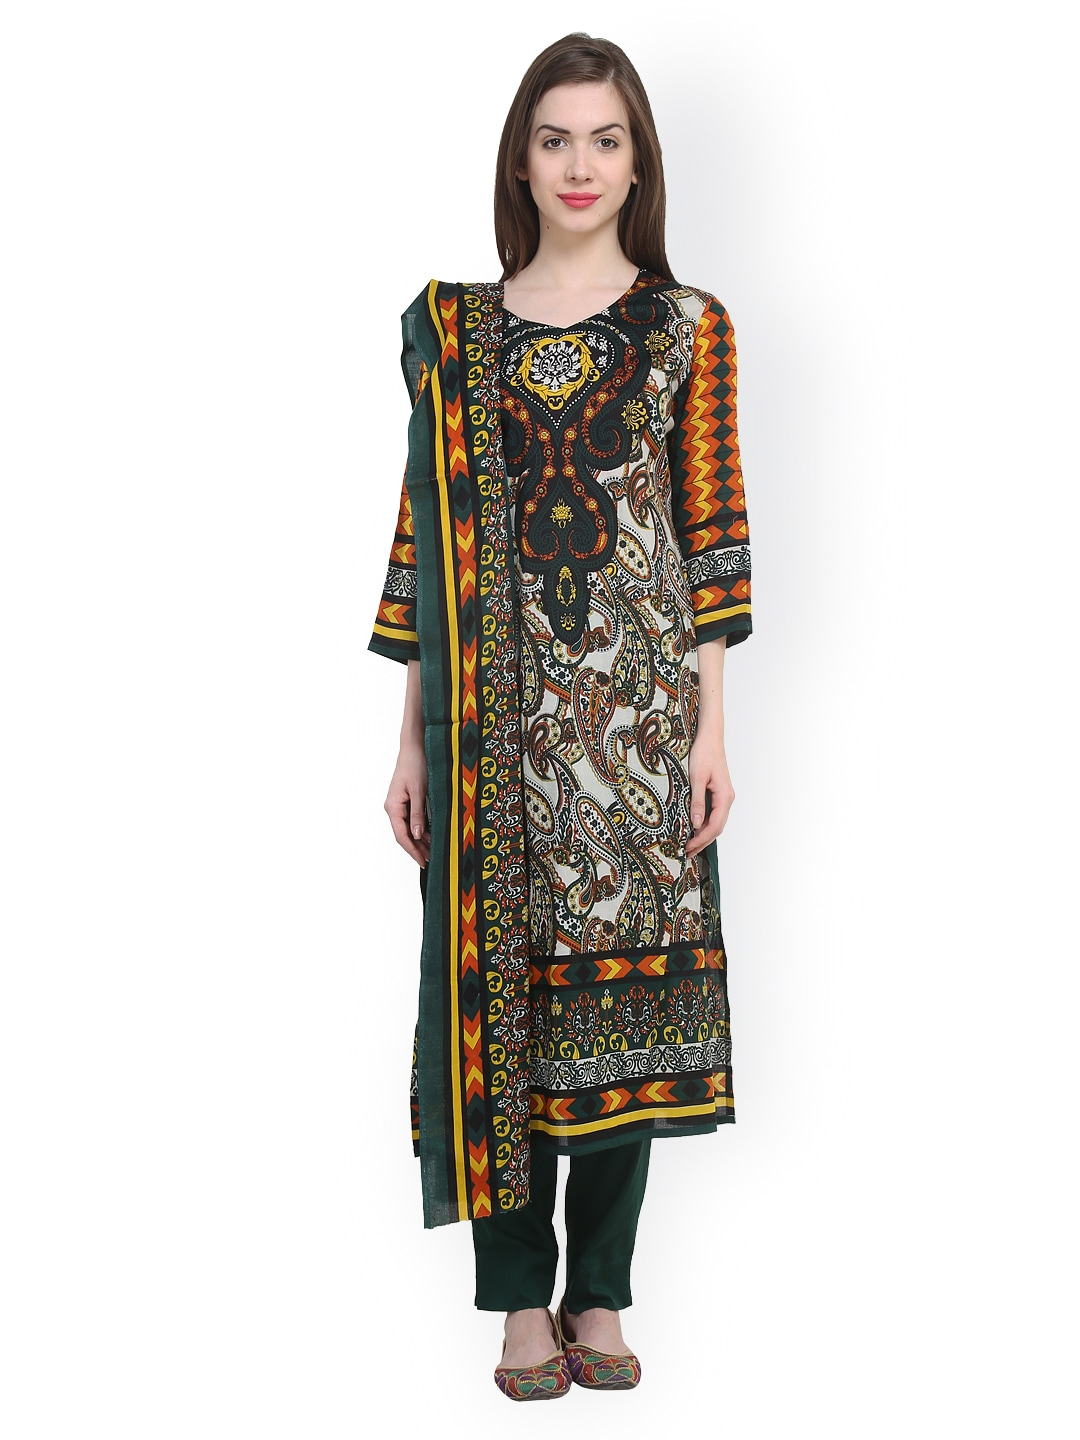 Uptown Galeria Green Printed Pakistani Cotton Lawn Unstitched Dress Material